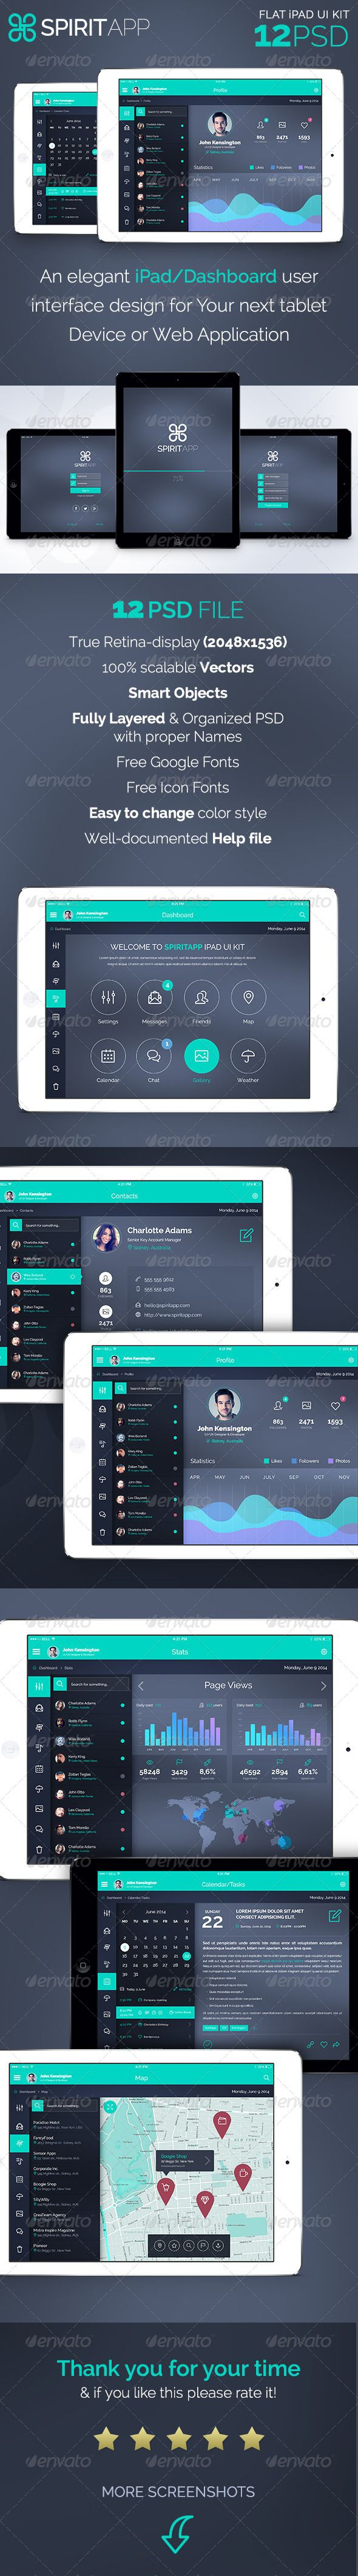 SpiritApp - Flat iPad App UI Kit Template PSD #design Download: http://graphicriver.net/item/spiritapp-flat-ipad-app-ui-kit/7979770?ref=ksioks